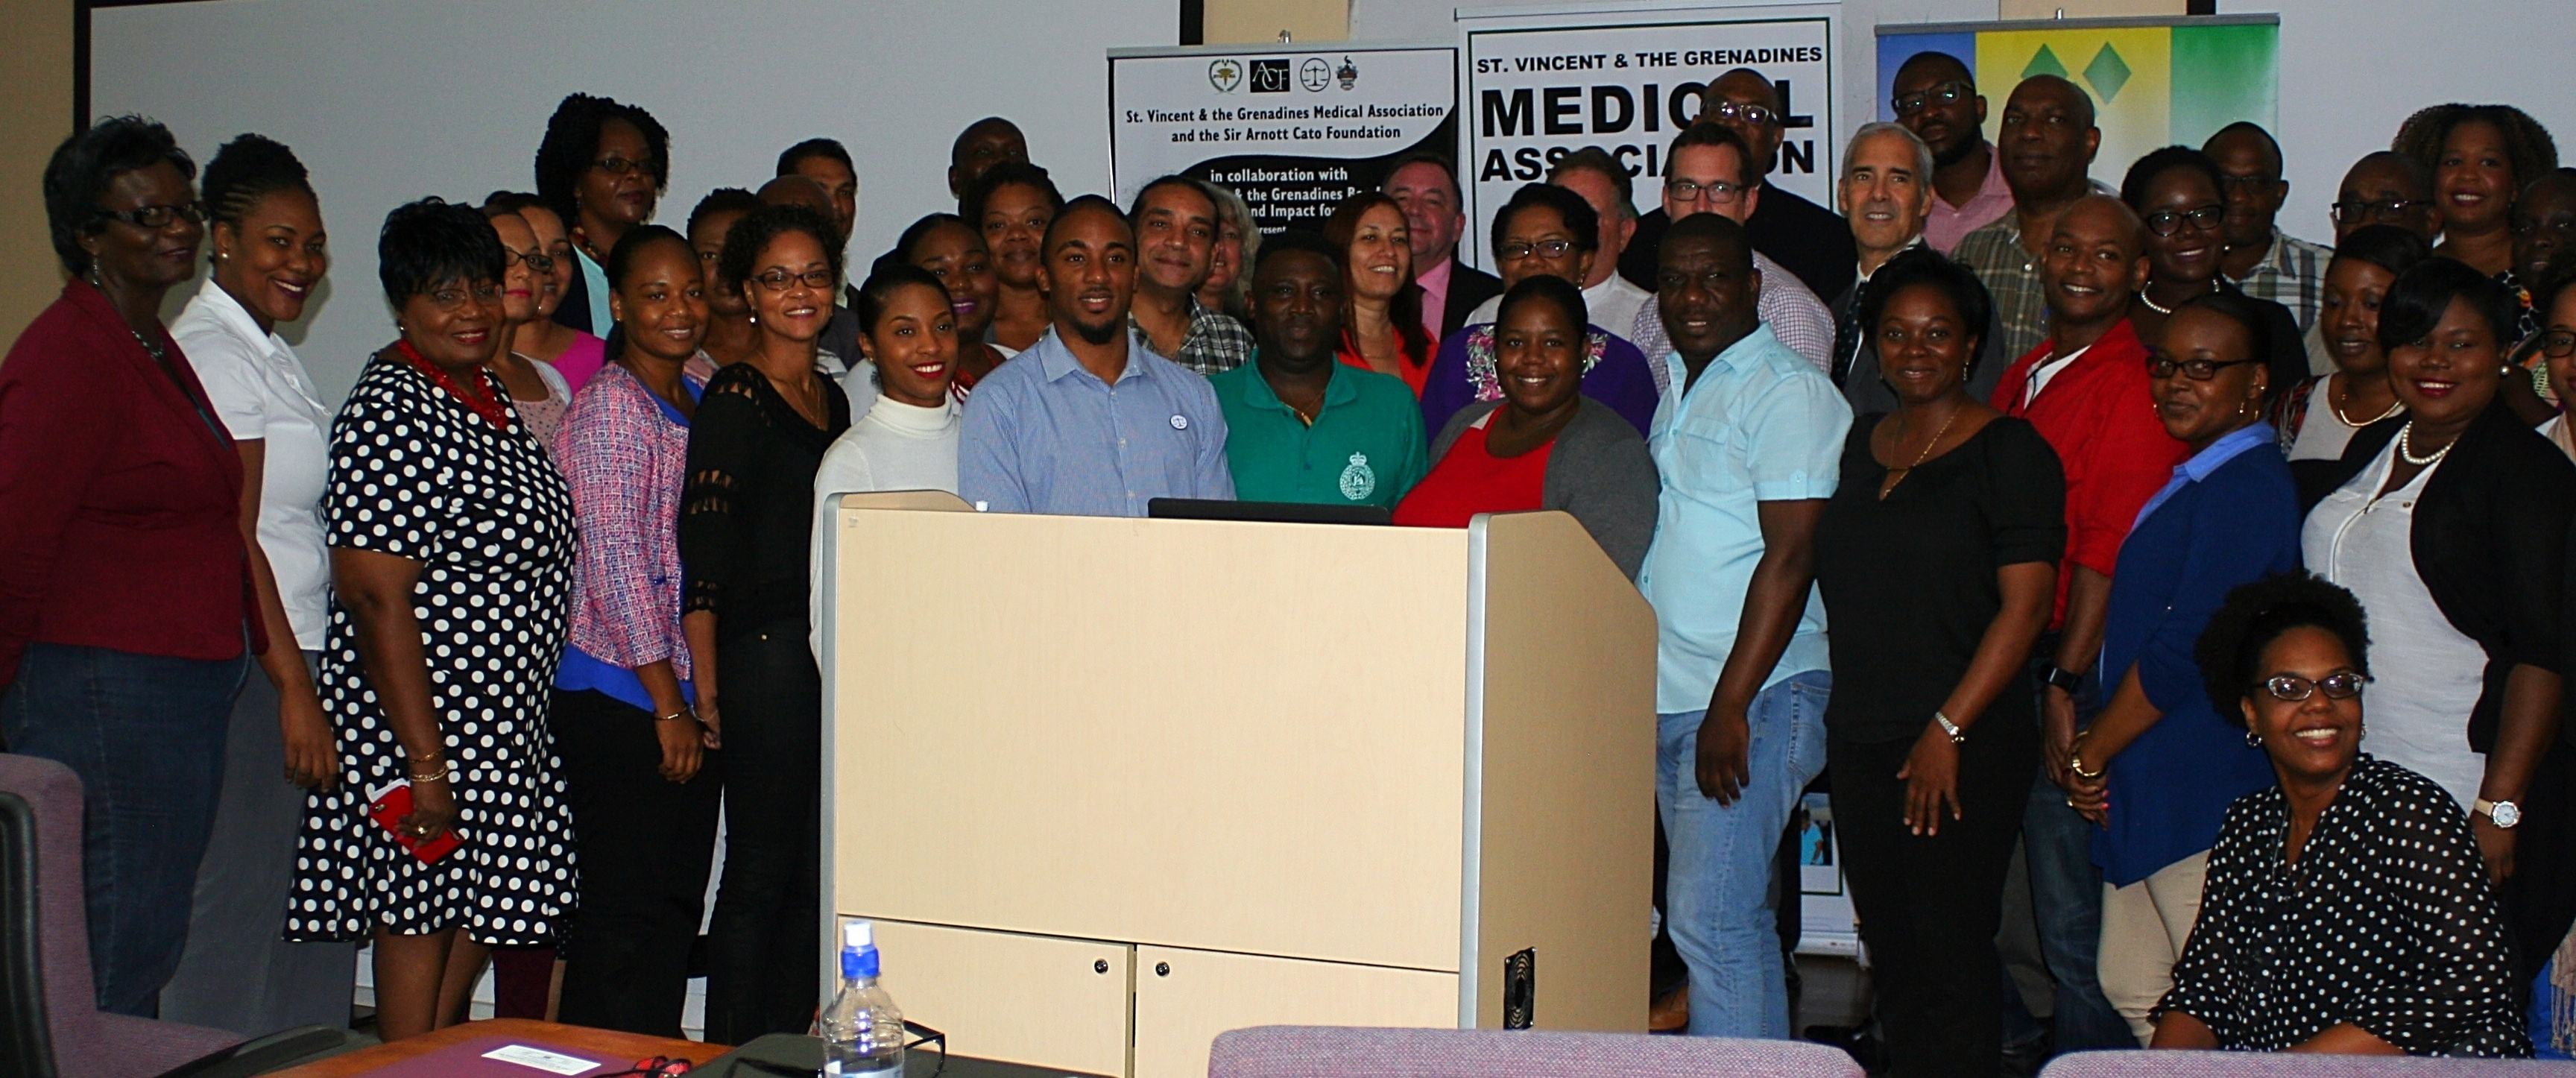 Trinity School of Medicine Hosts Forensic and Law Symposium on St. Vincent